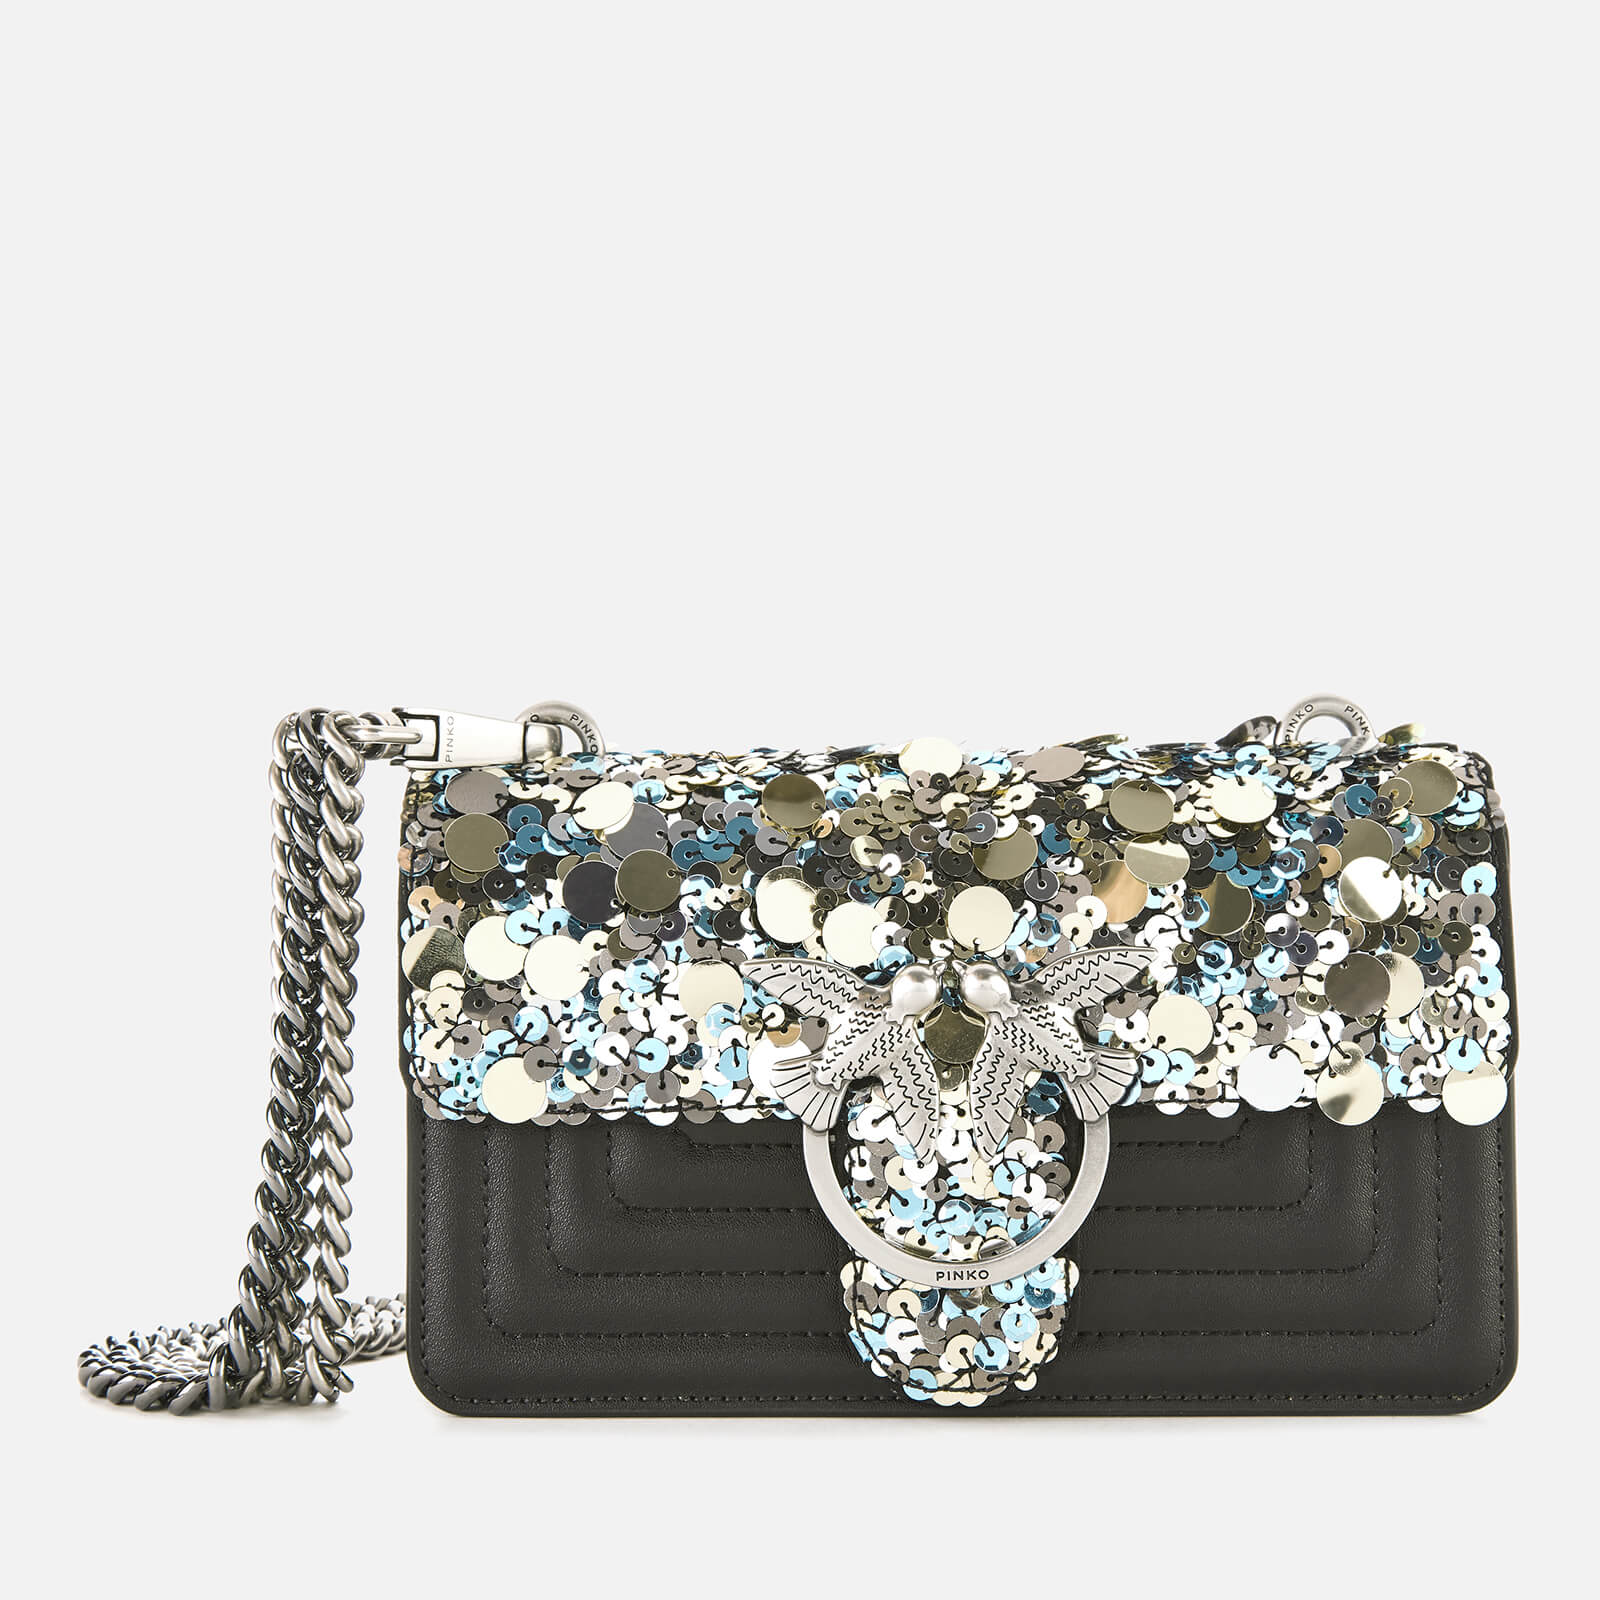 Pinko Women's Mini Love Paillettes Bag - Antracite